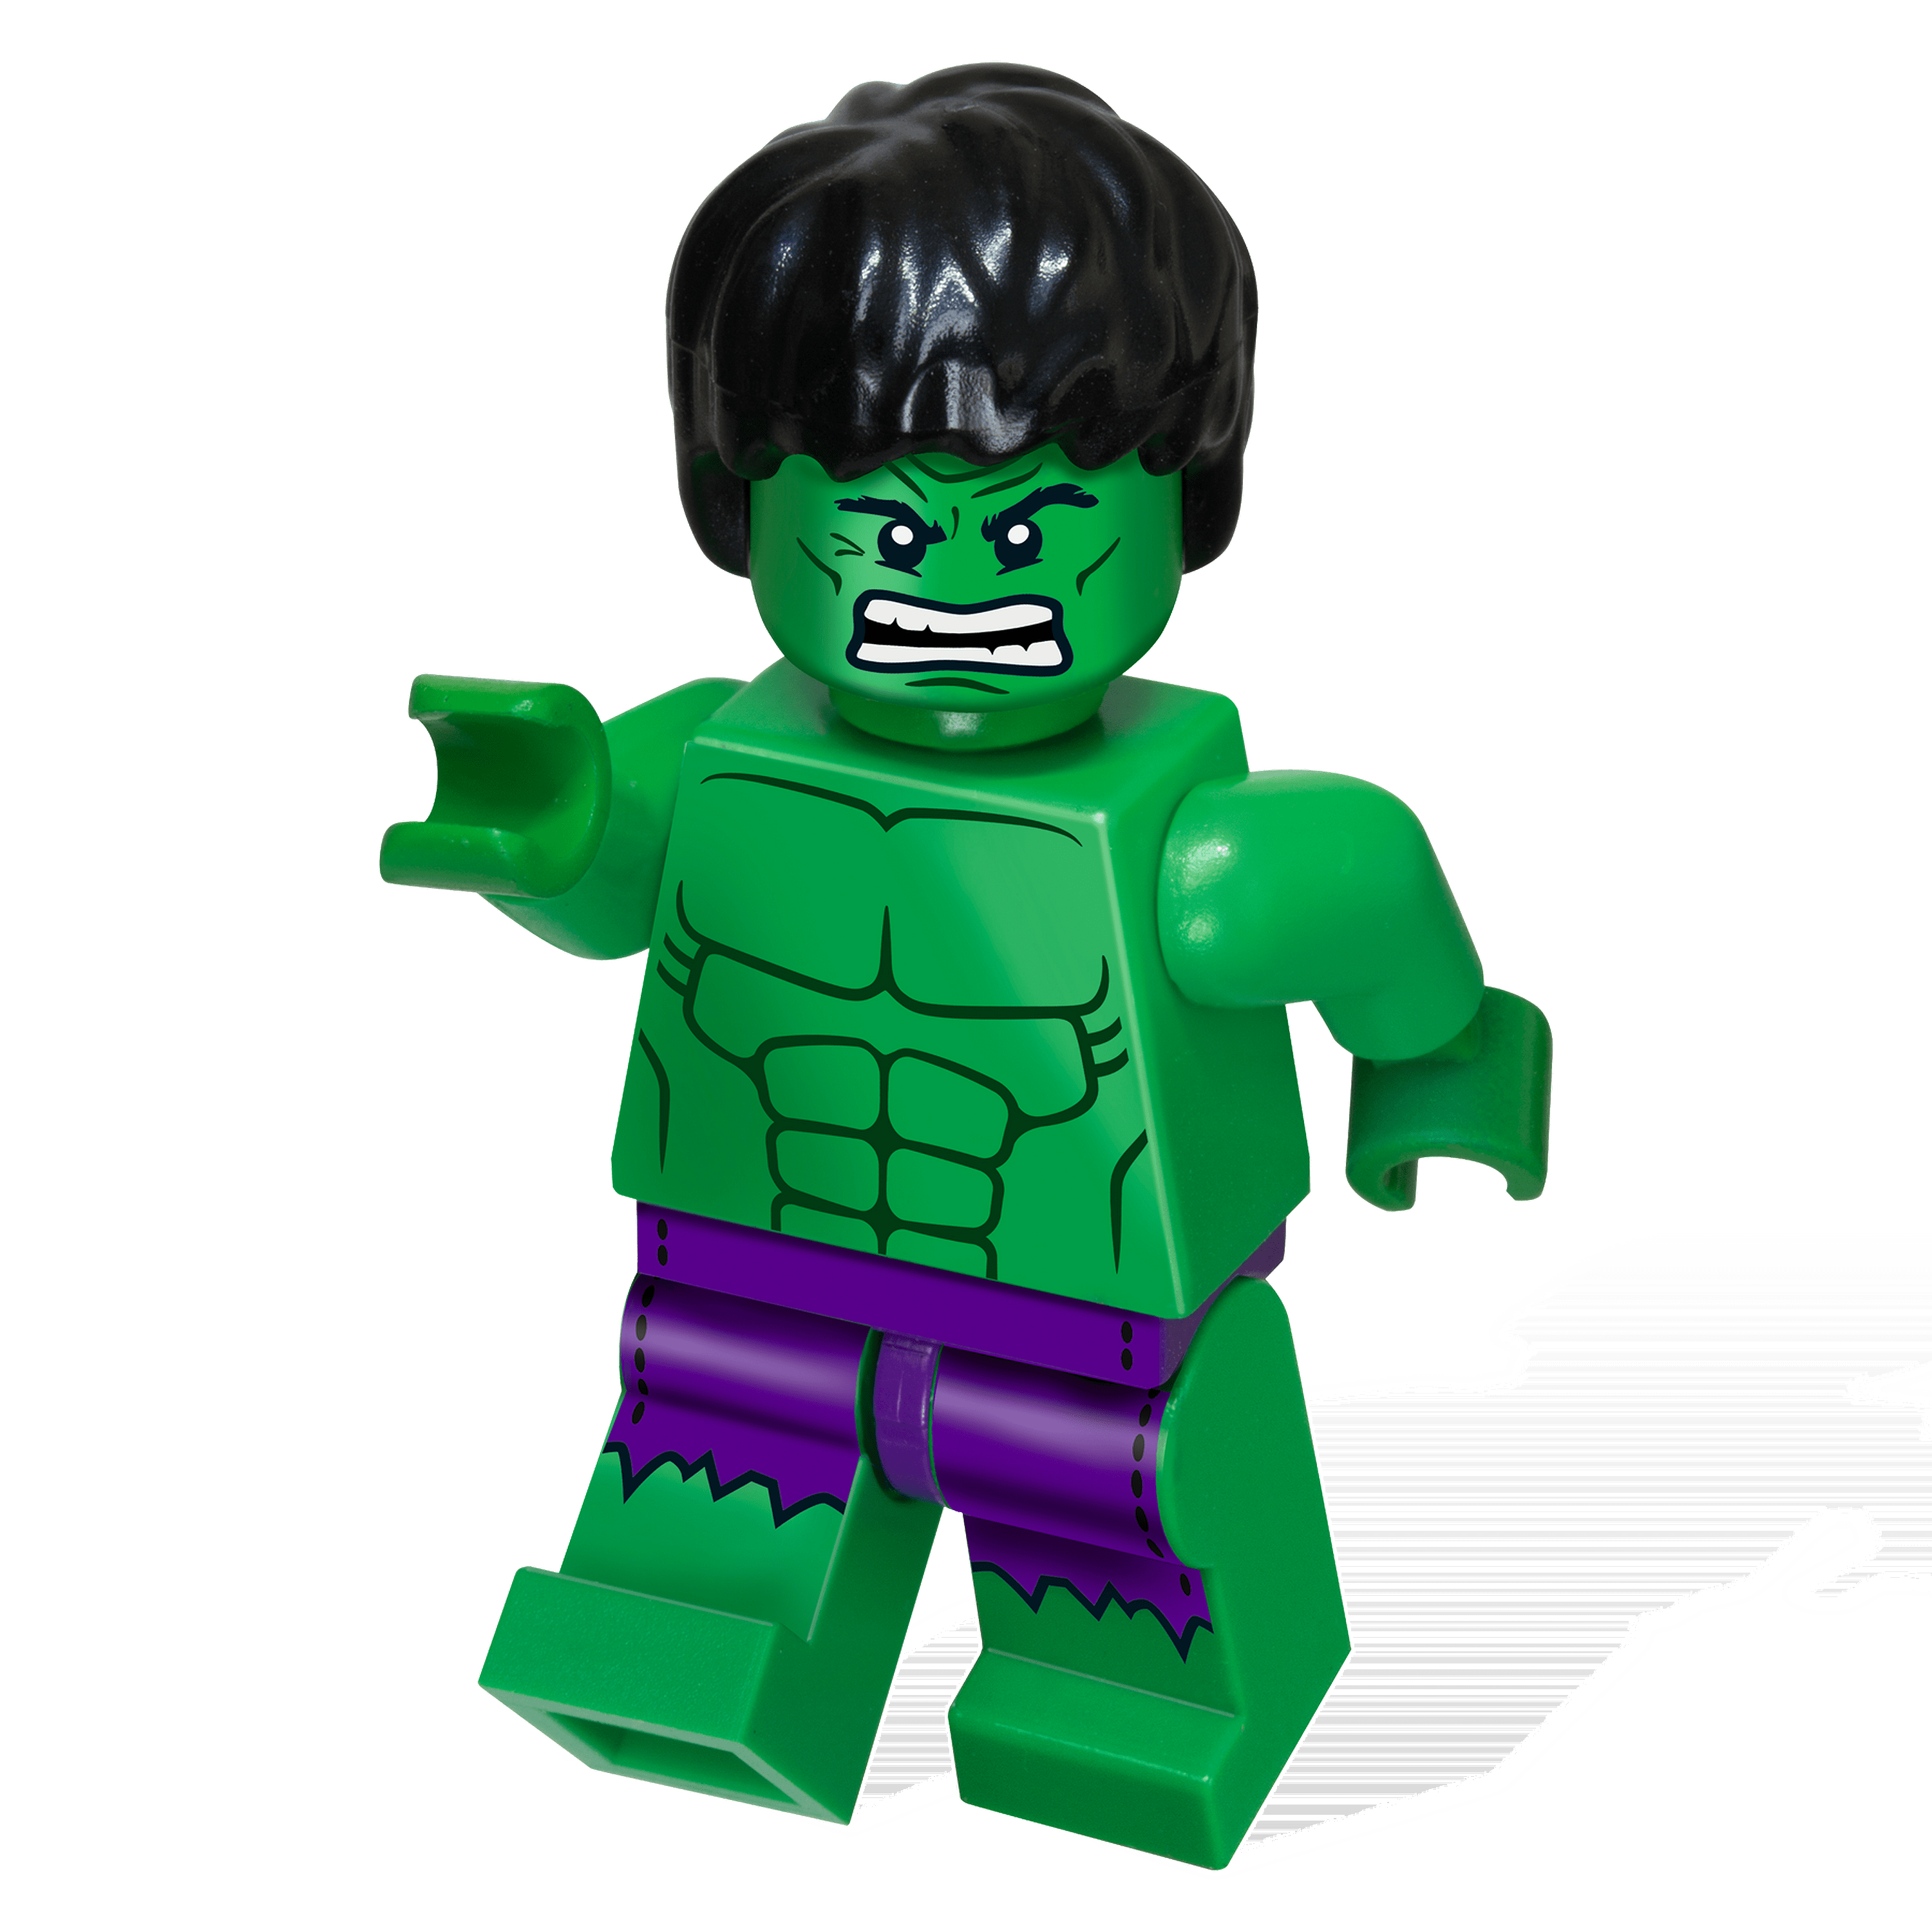 Lego Green Man Clipart image #46617